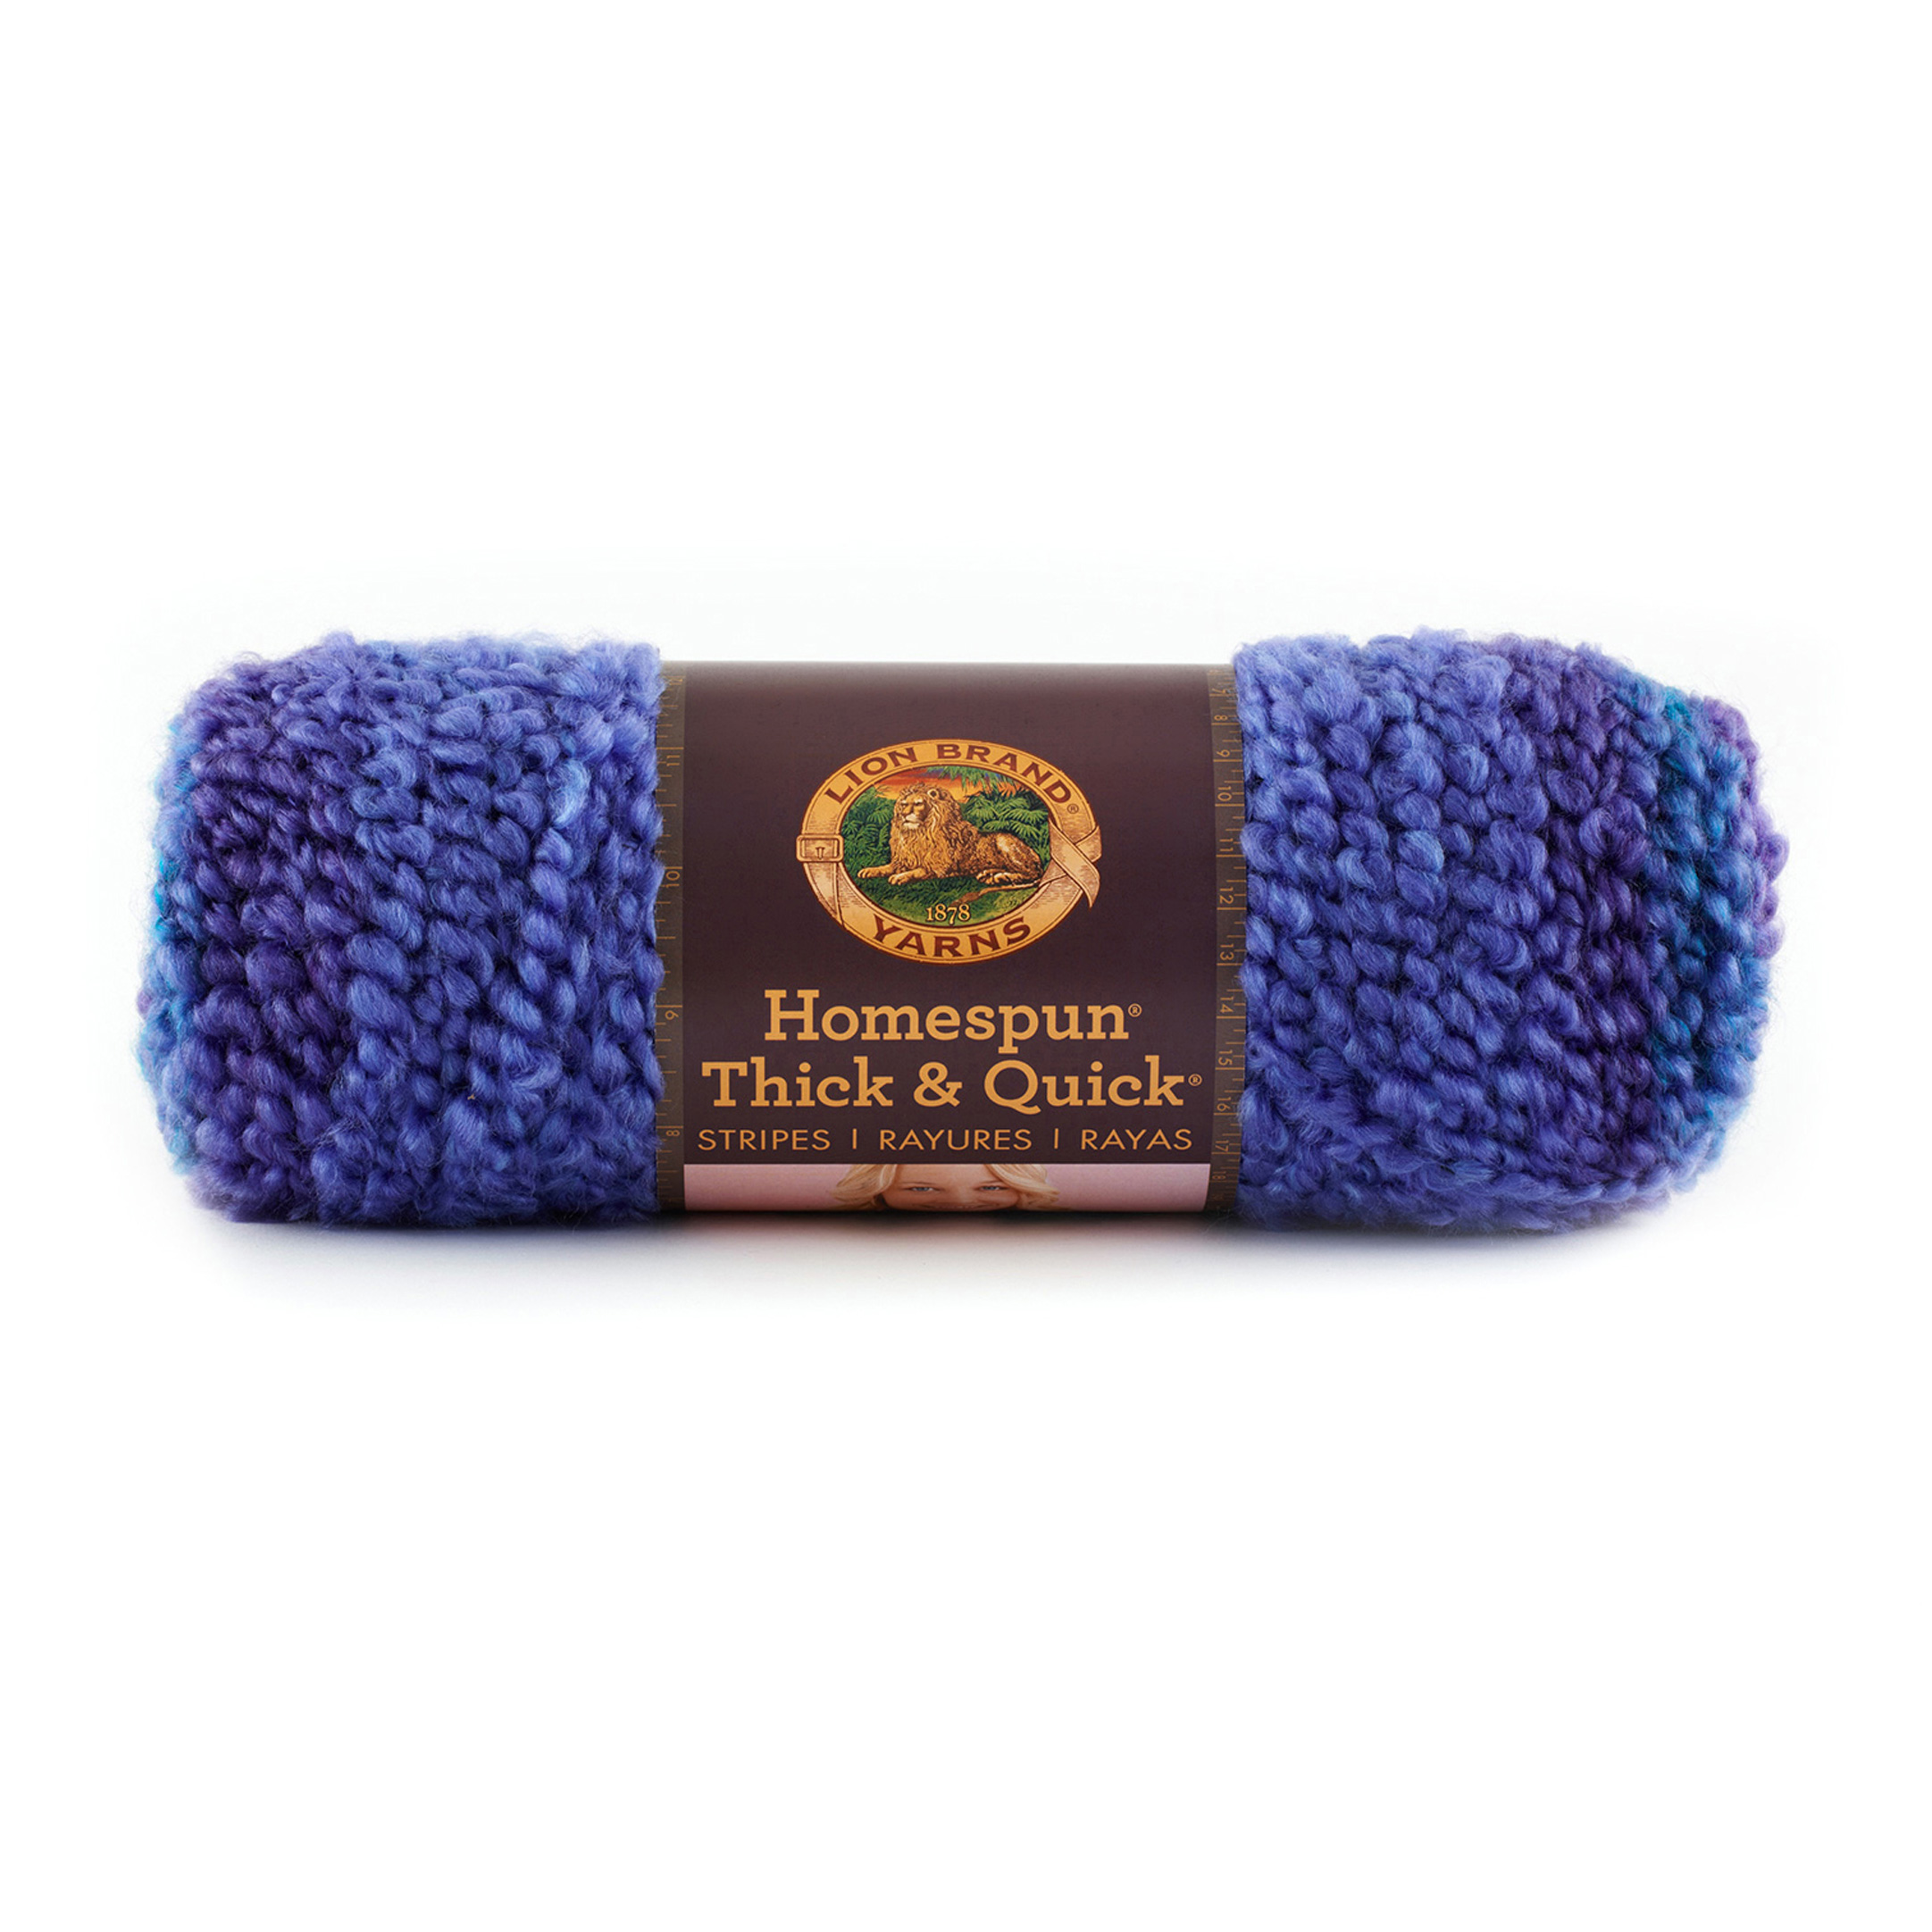 Lion Brand Homespun Thick & Quick Stripes Yarn 208 Violet Stripes by Lion in USA